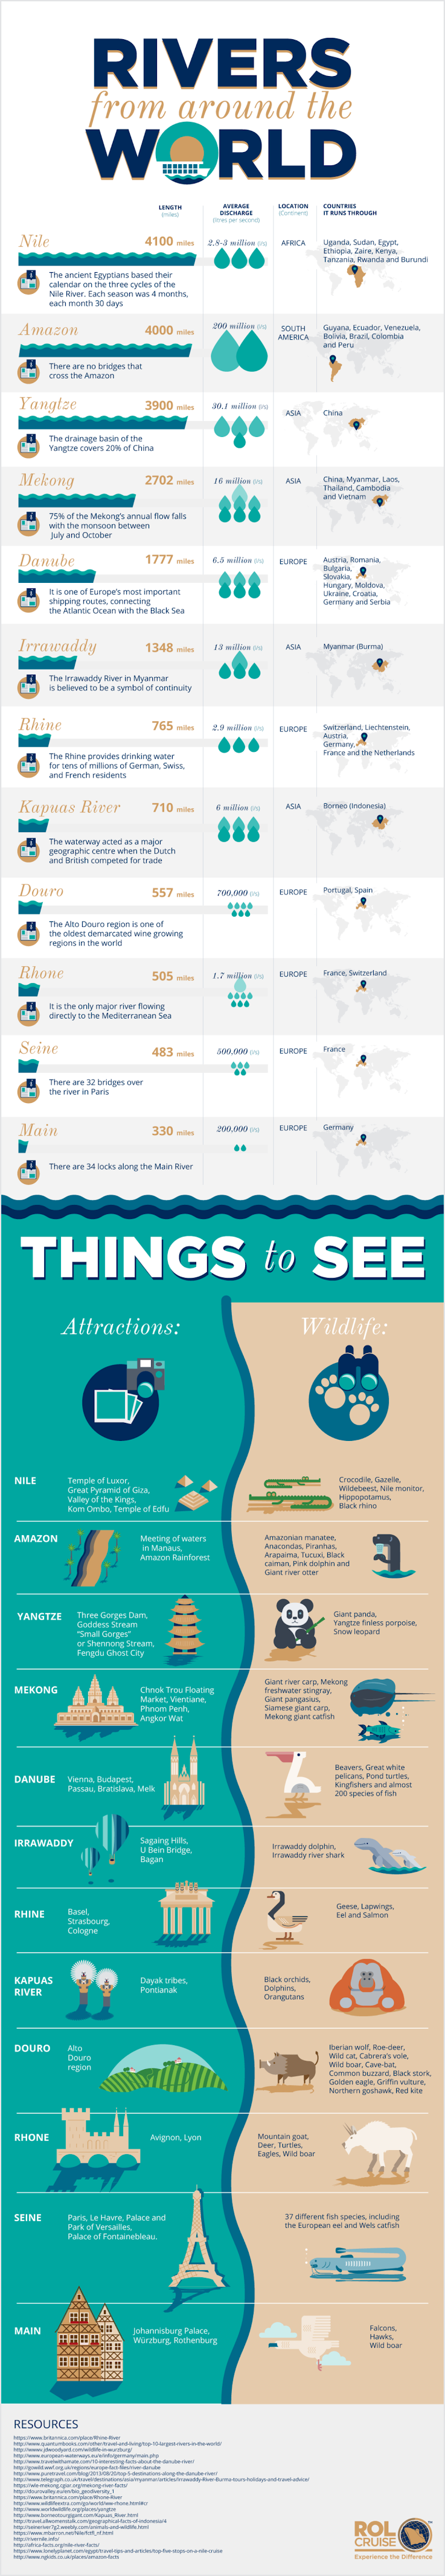 Rivers from Around the World #infographic